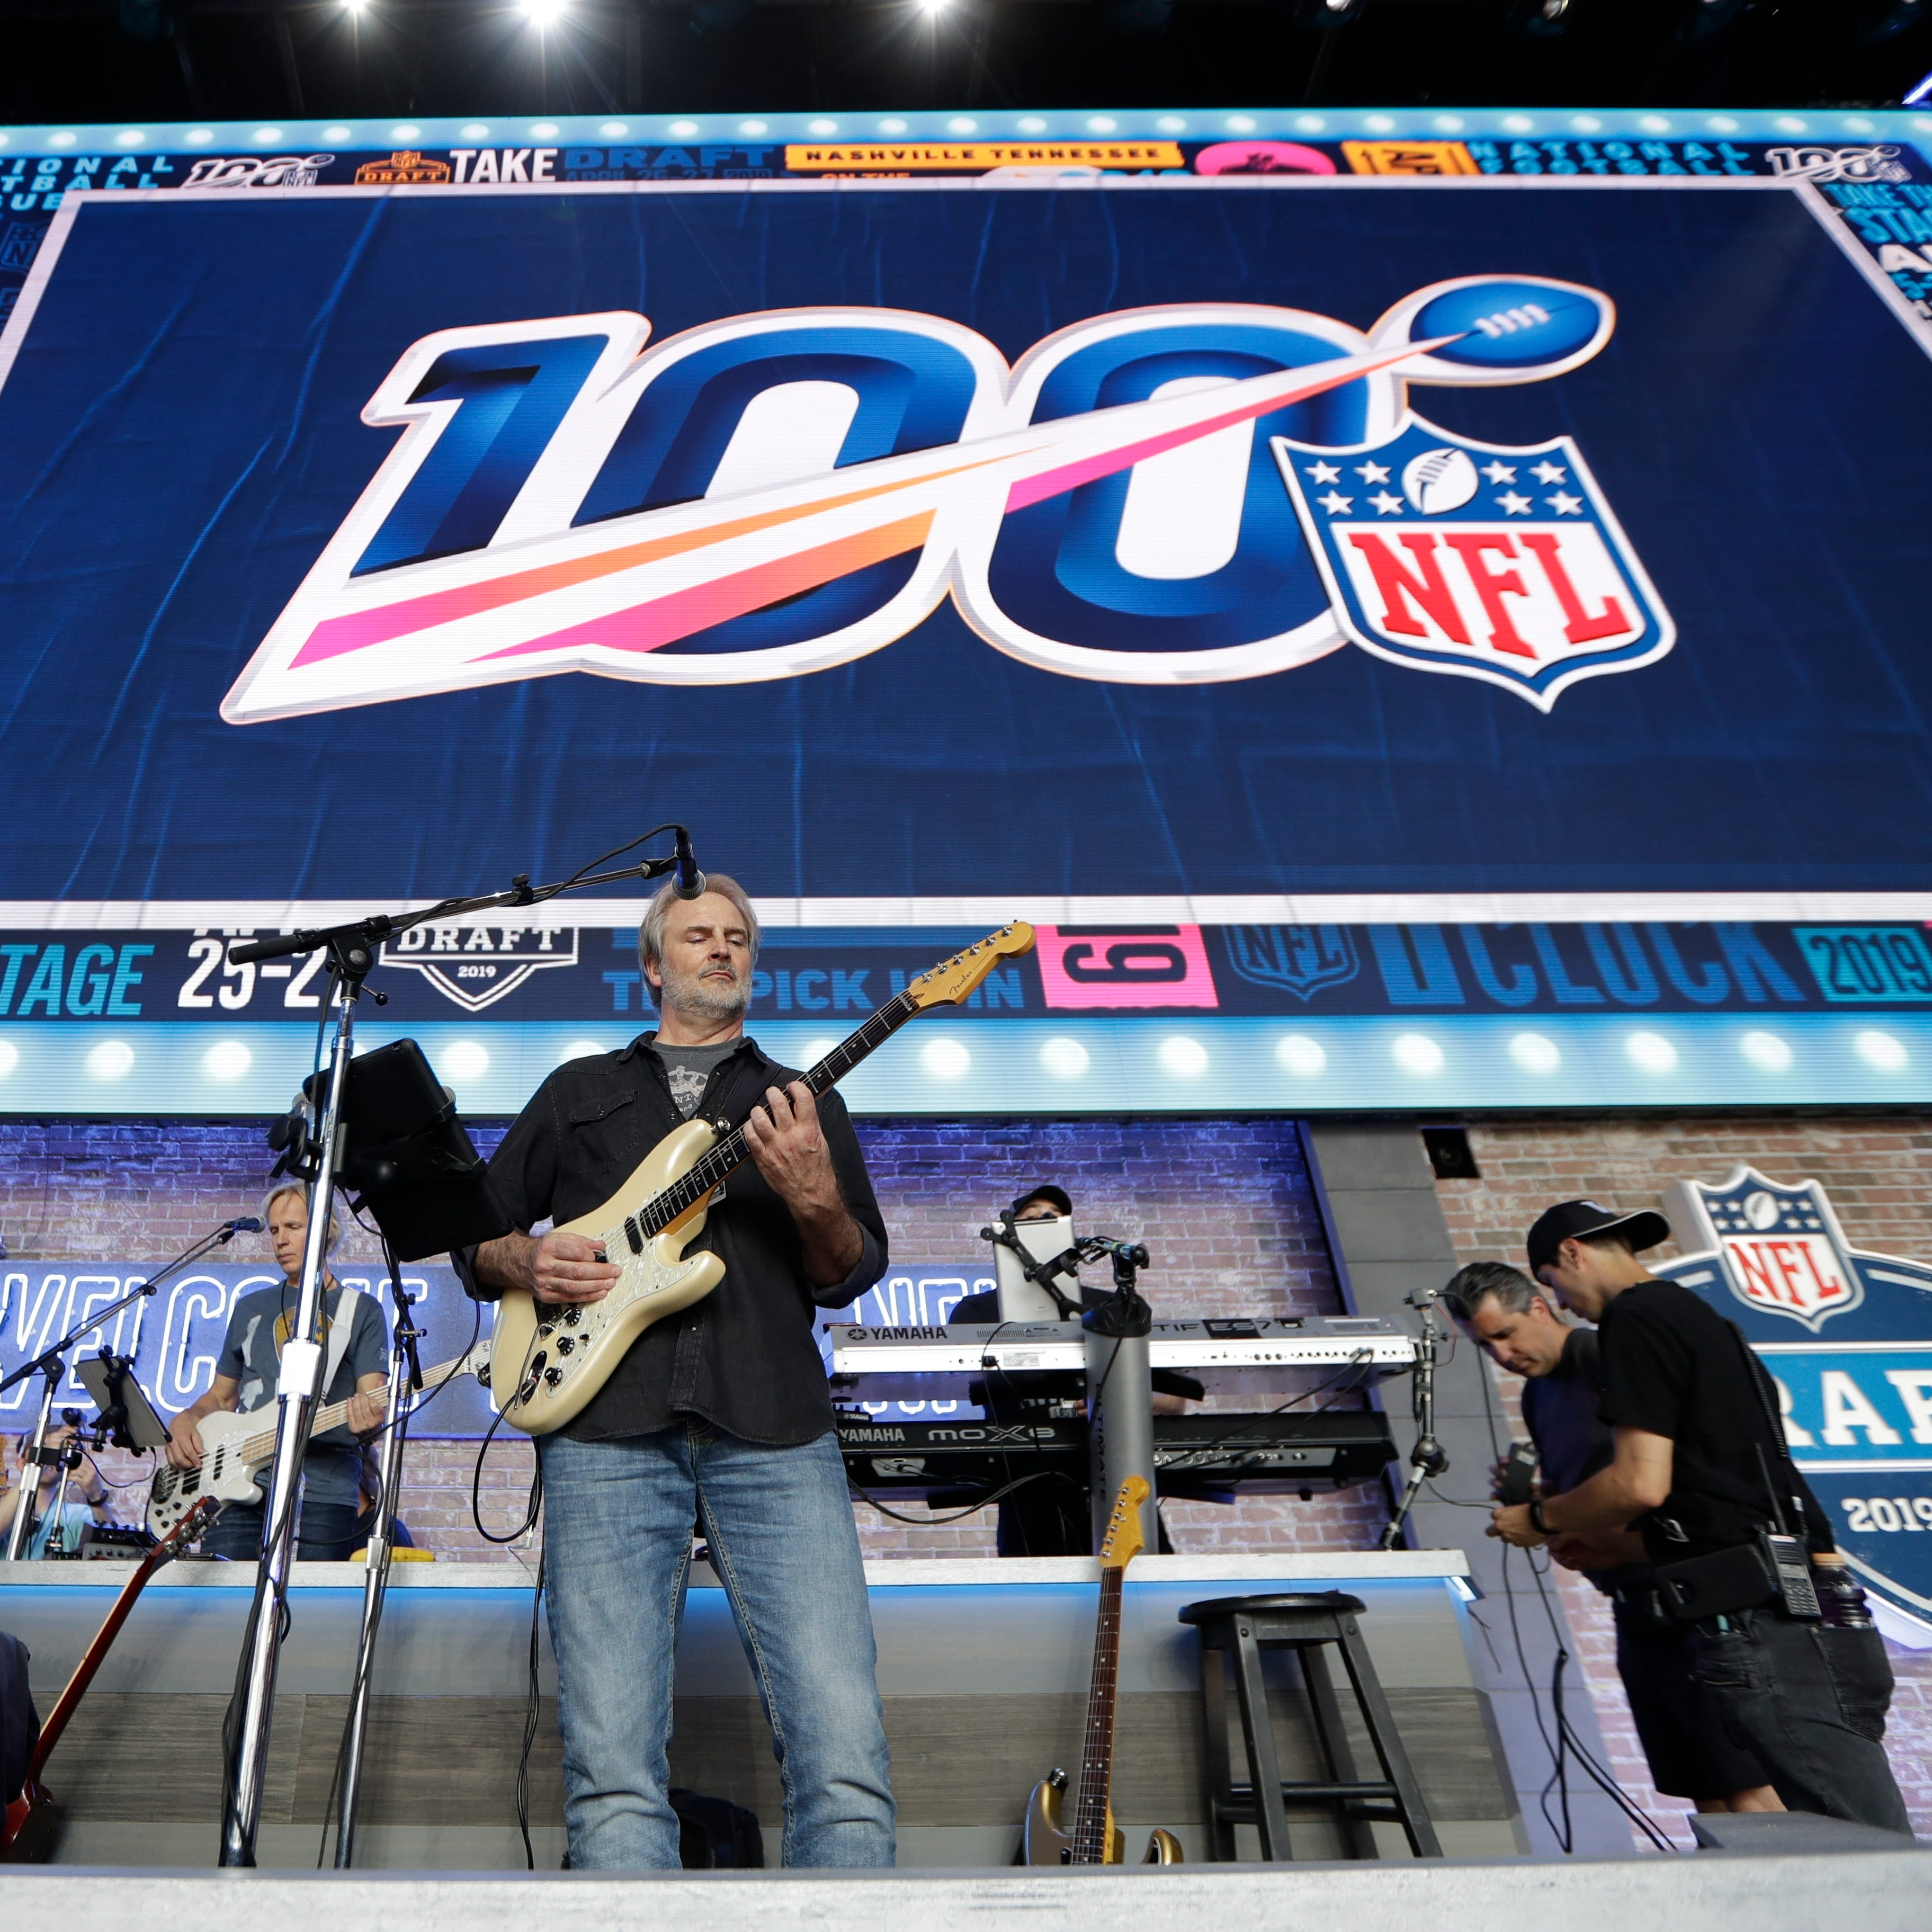 Bone up on what the Colts will do in the NFL Draft